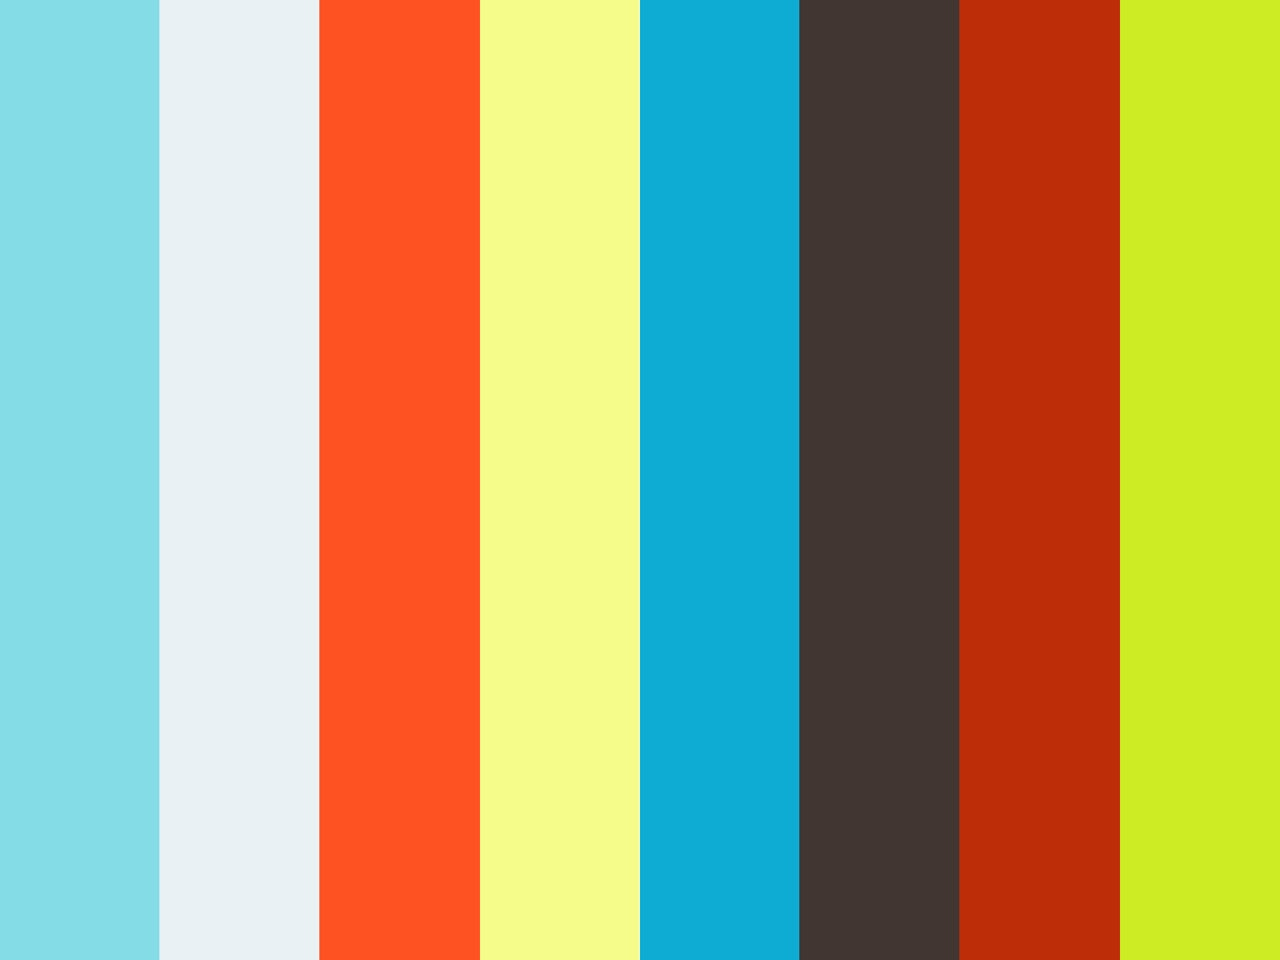 Peoplesoft hrm training guide ebook array payroll training free online sap payroll training rh payrolltrainingtodachia blogspot com fandeluxe